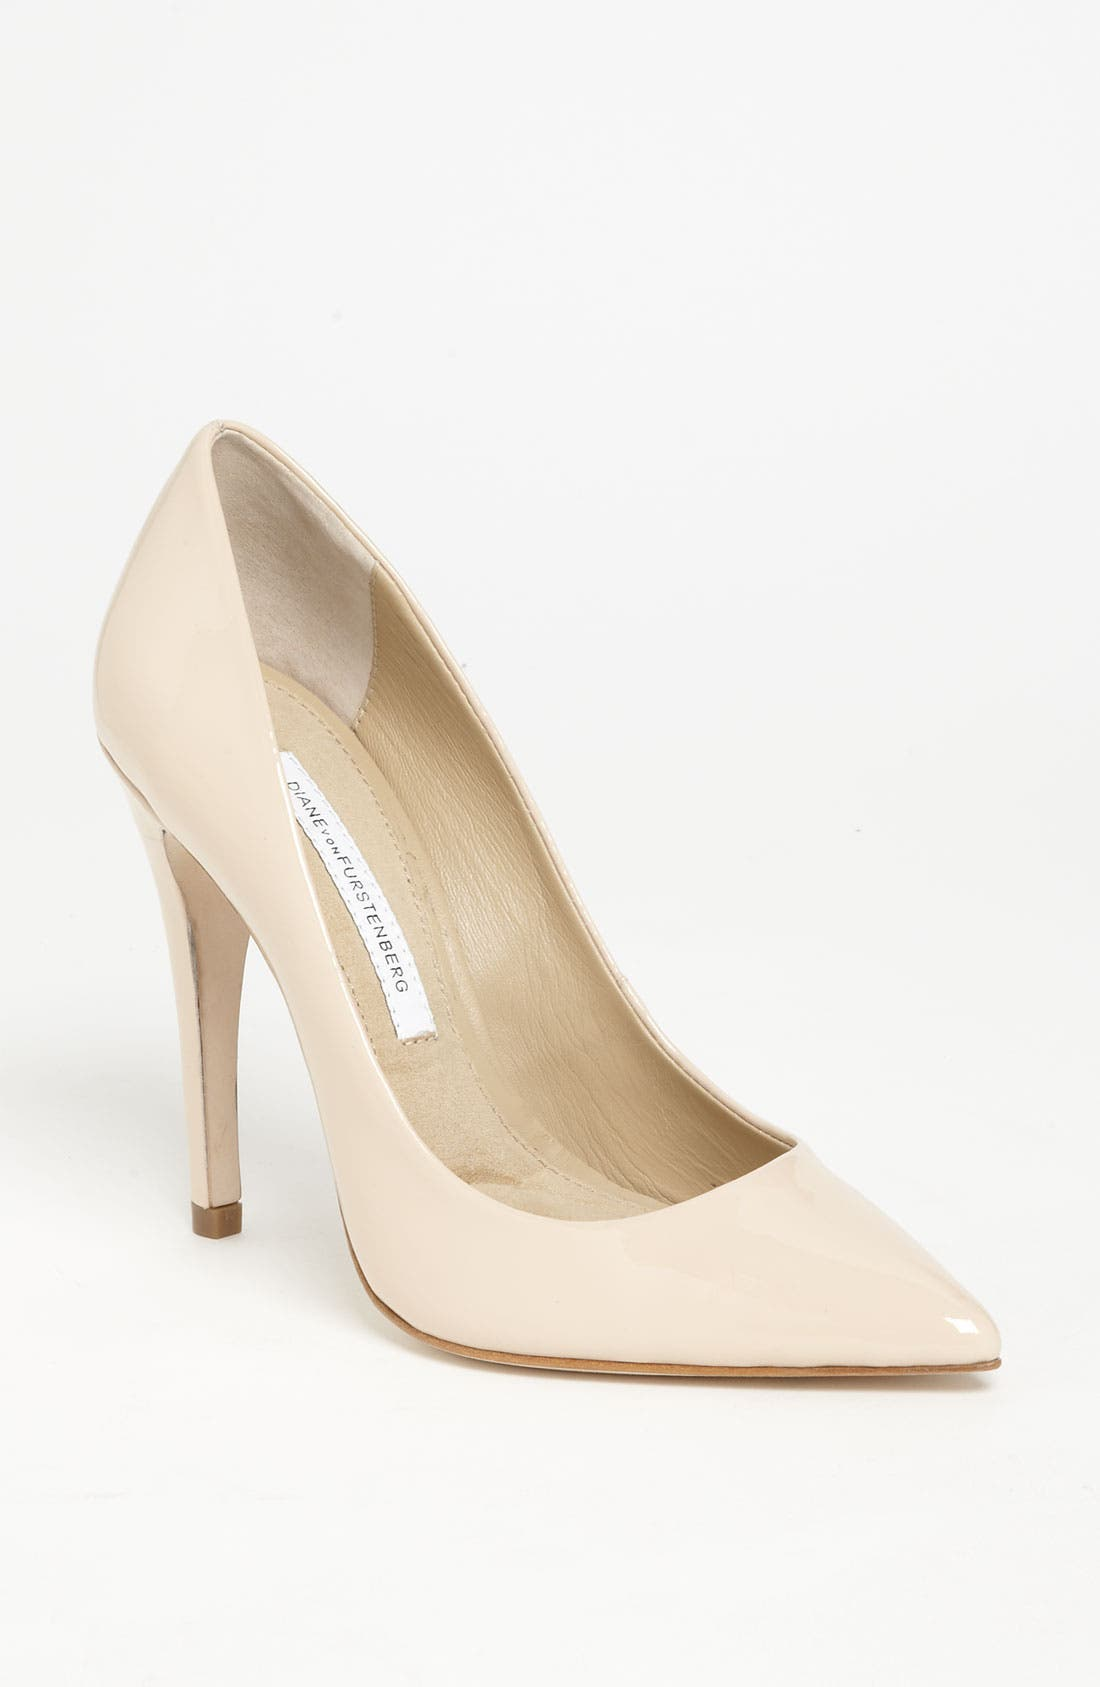 Alternate Image 1 Selected - Diane von Furstenberg 'Anette' Pump